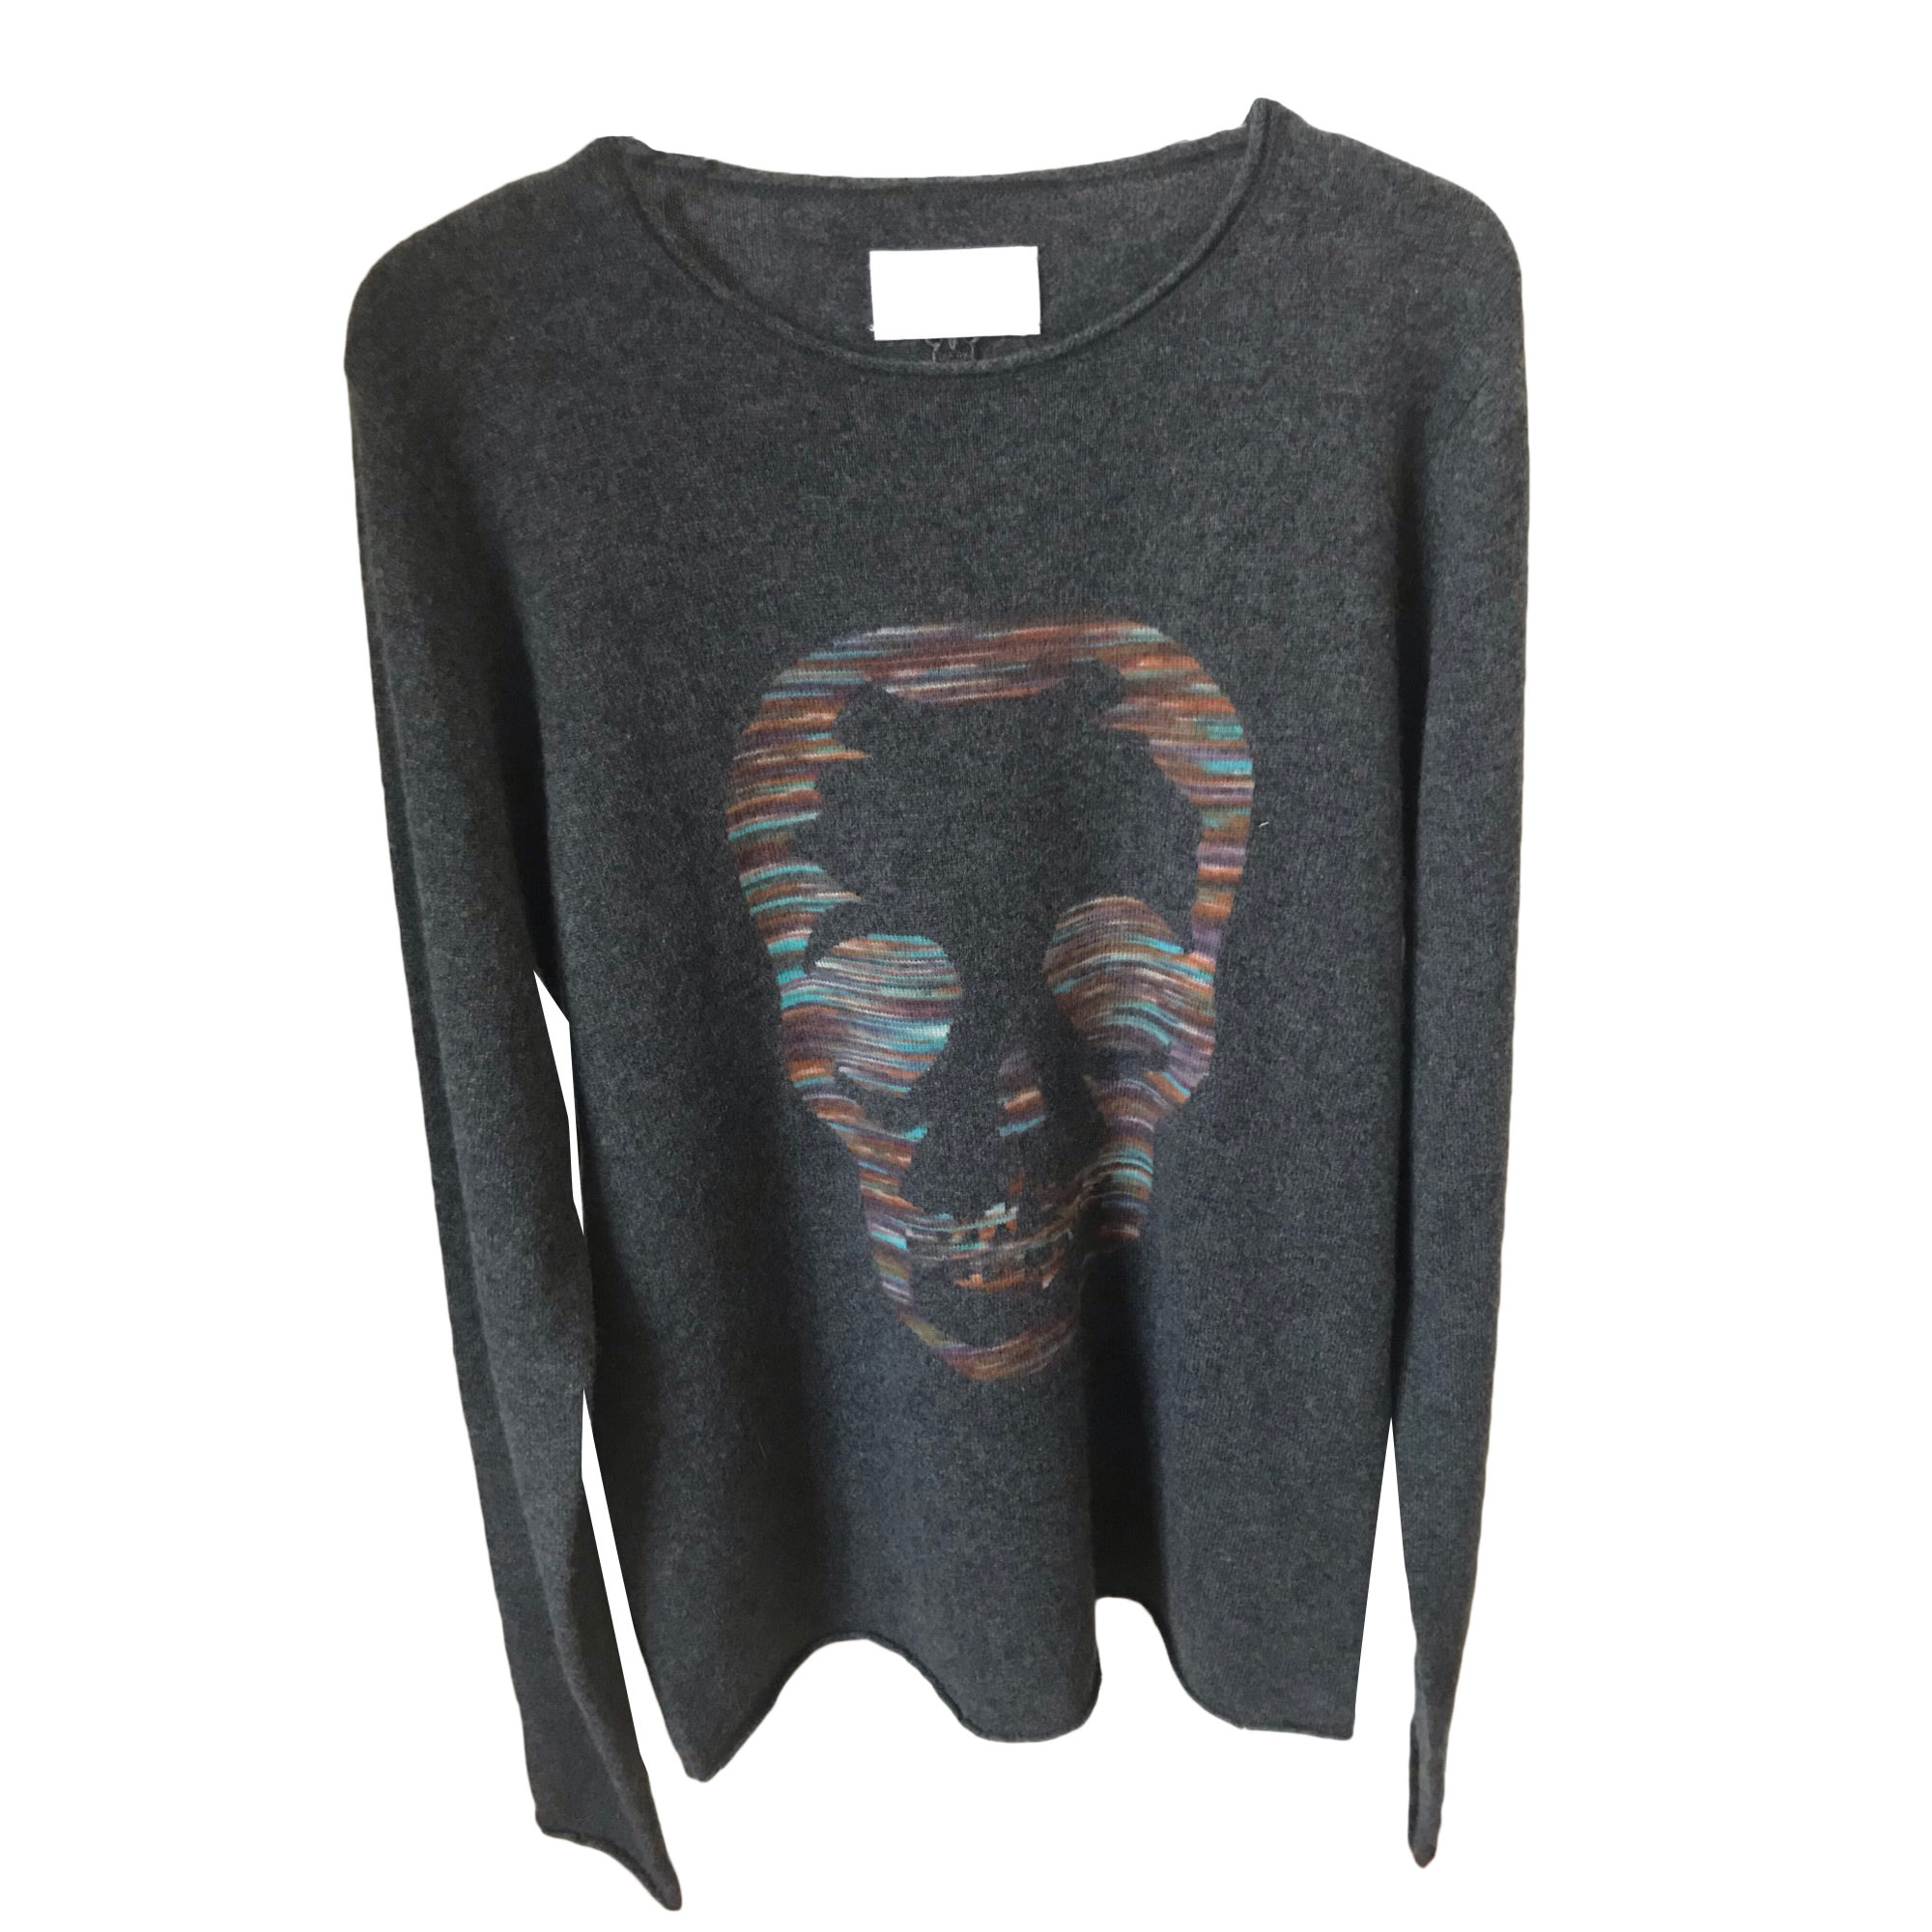 Sweater ZADIG & VOLTAIRE Gray, charcoal